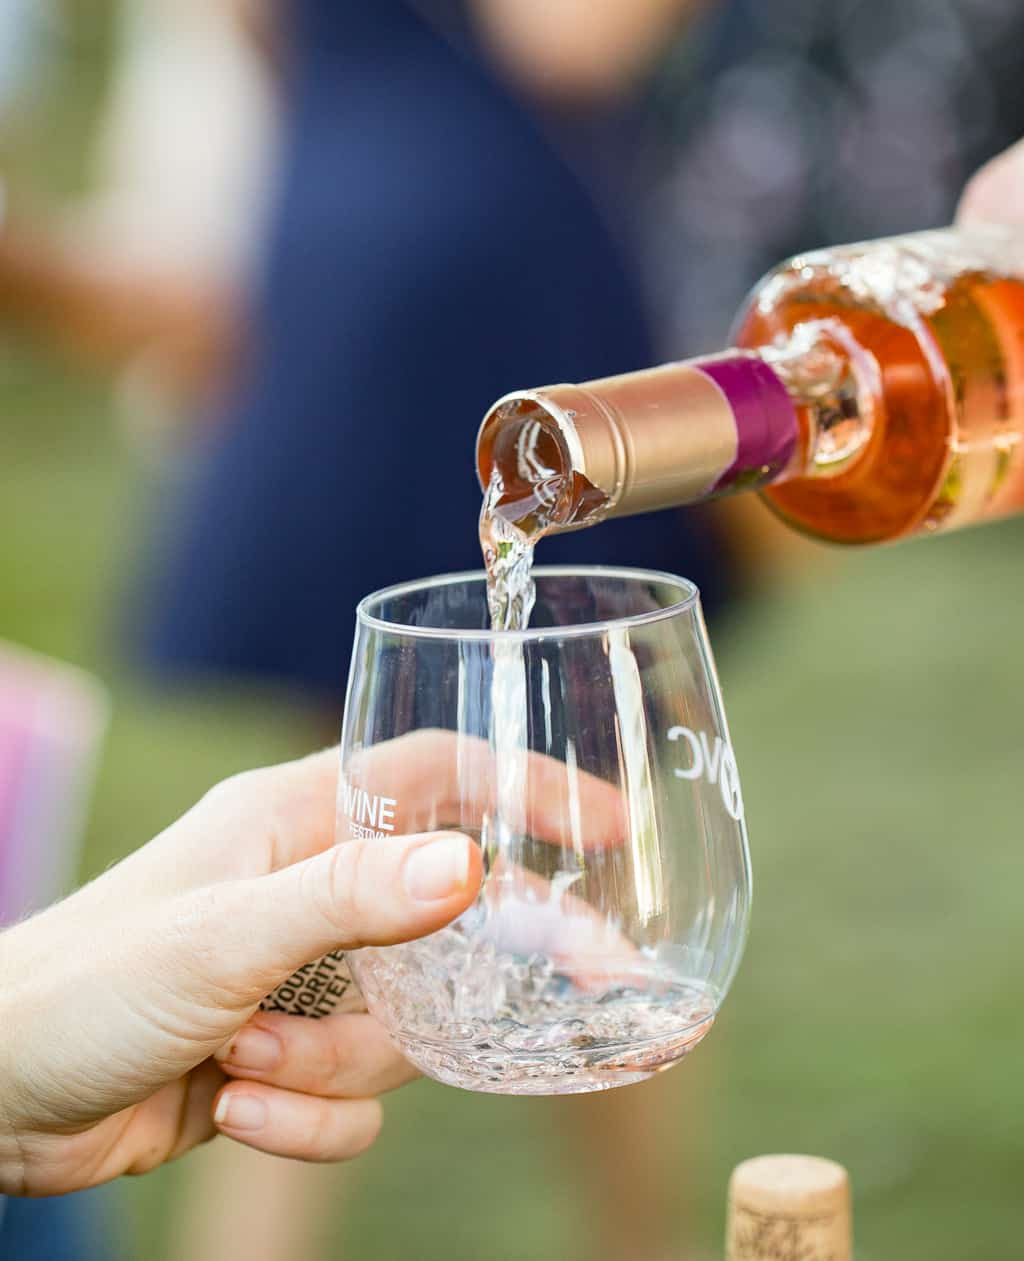 Glass of Rose at Atlanta Food and Wine Festival